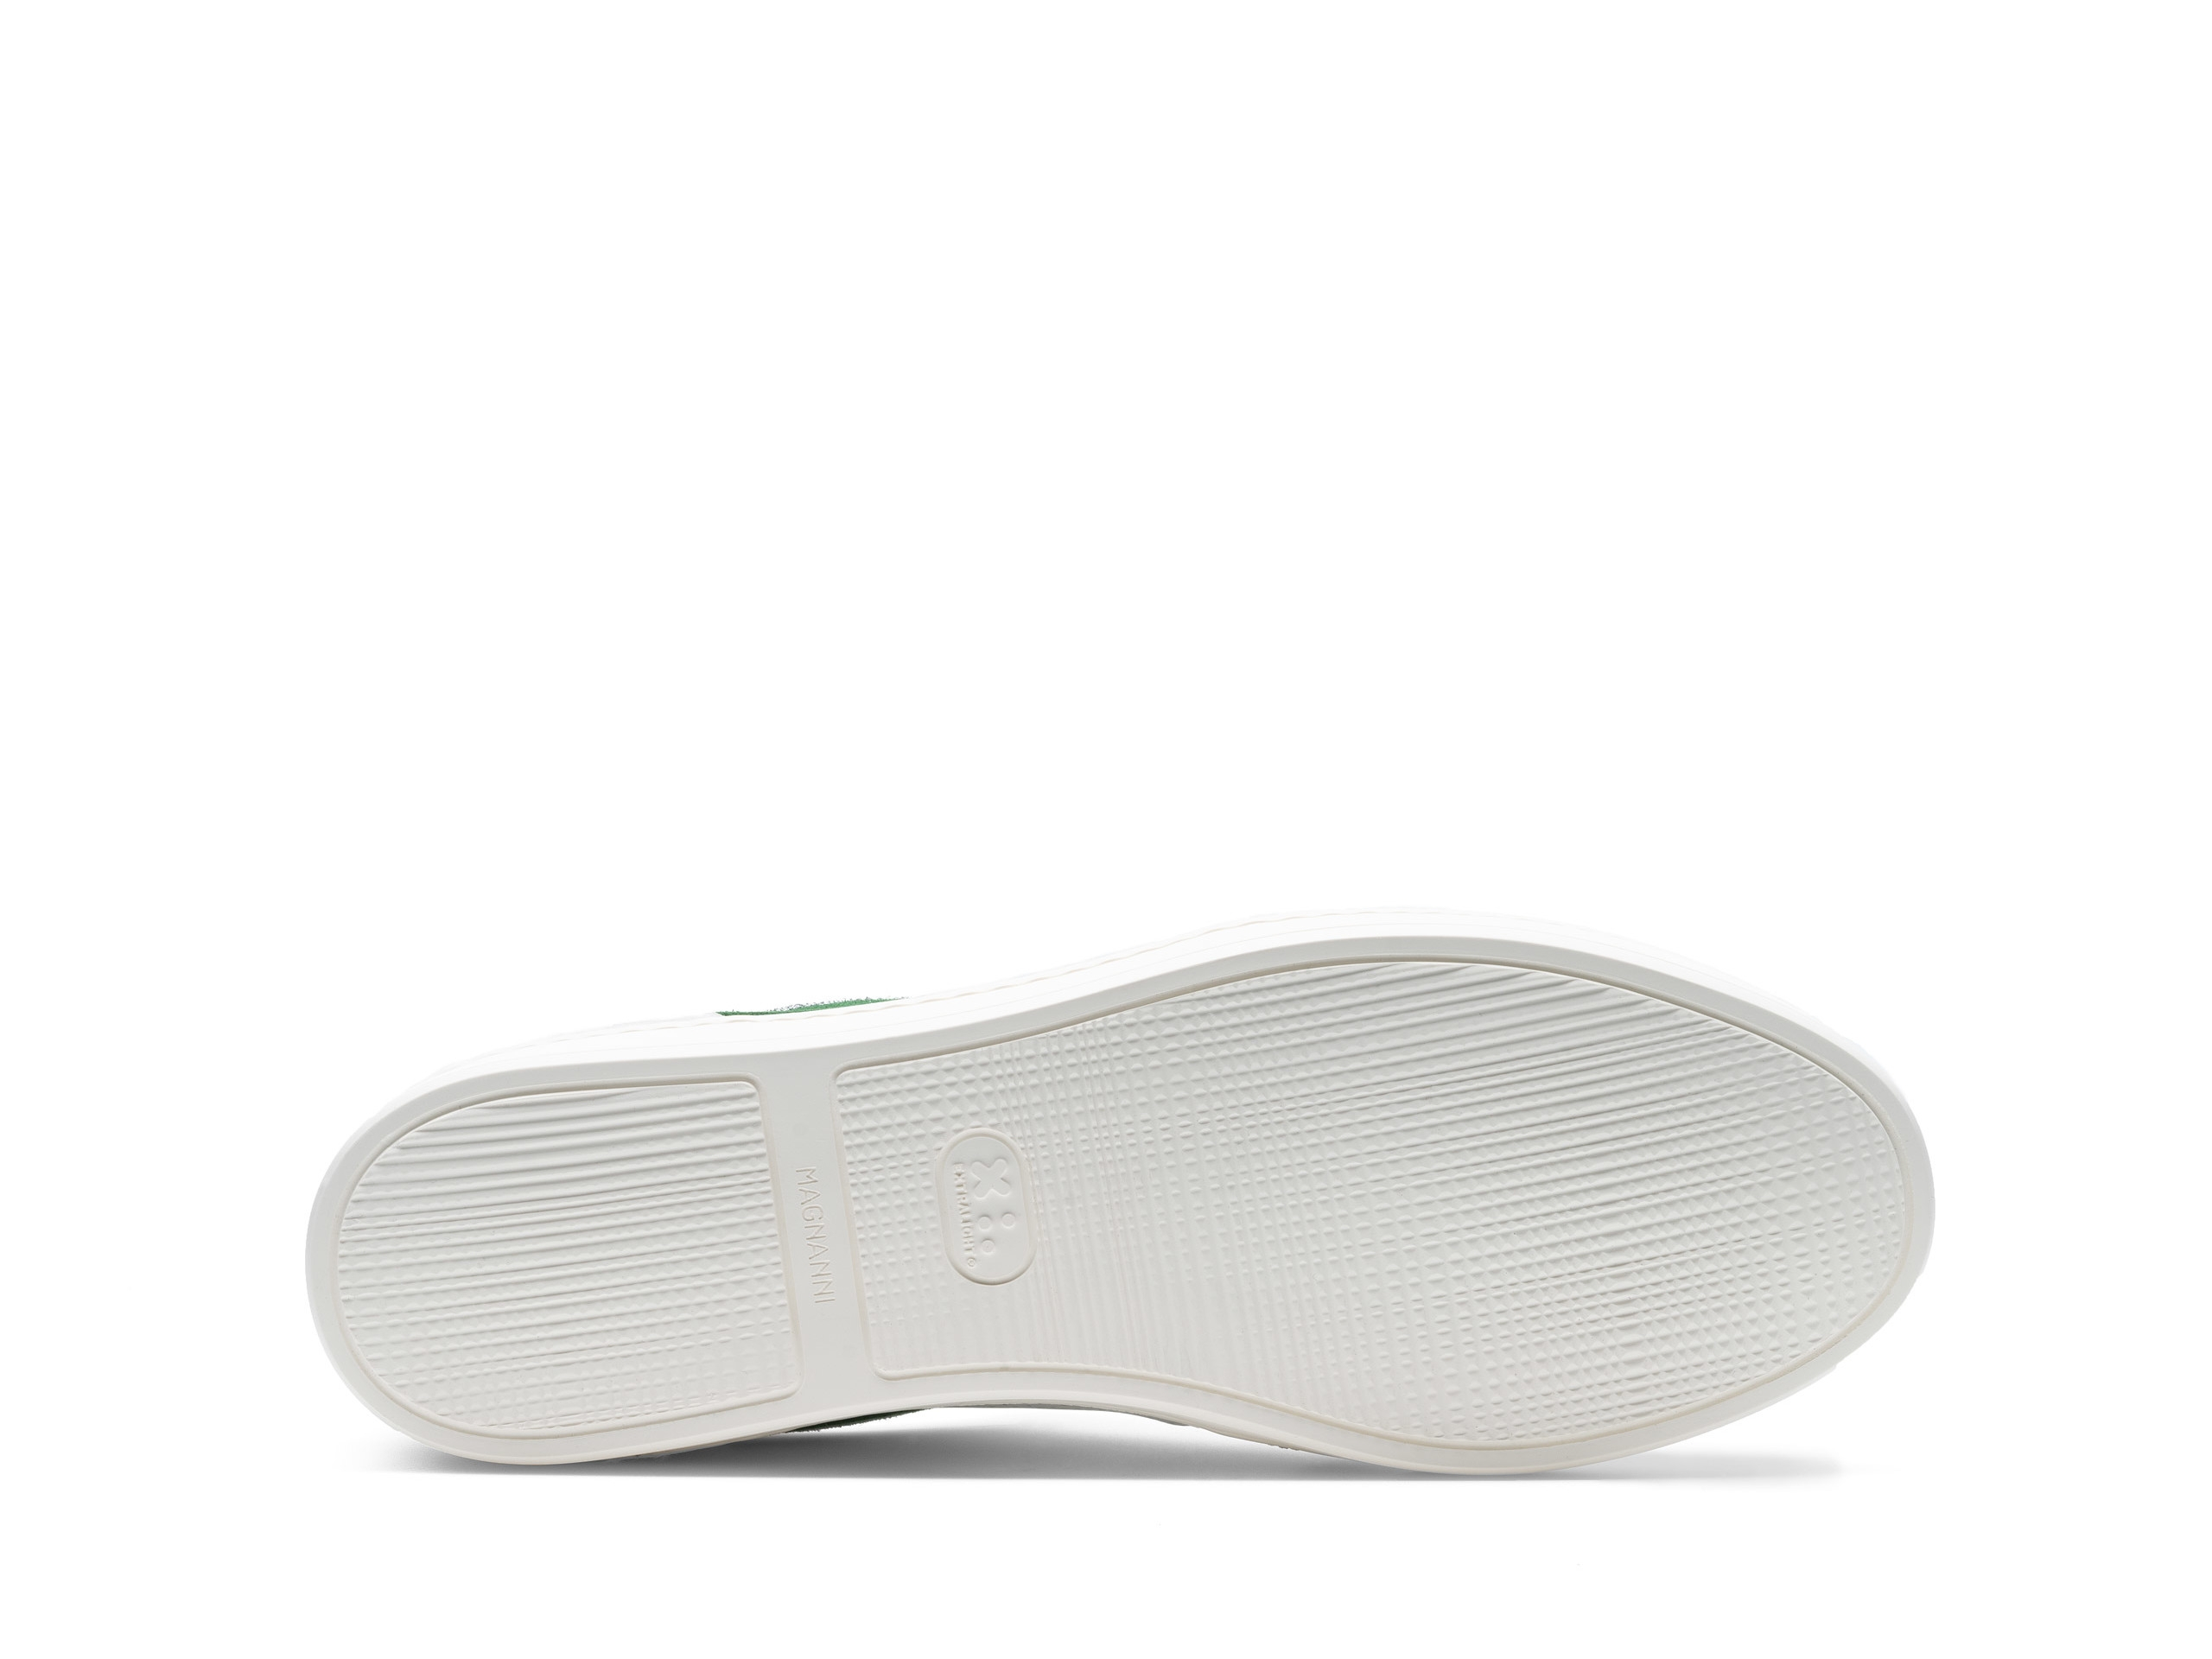 The sole of the Echo Lo II